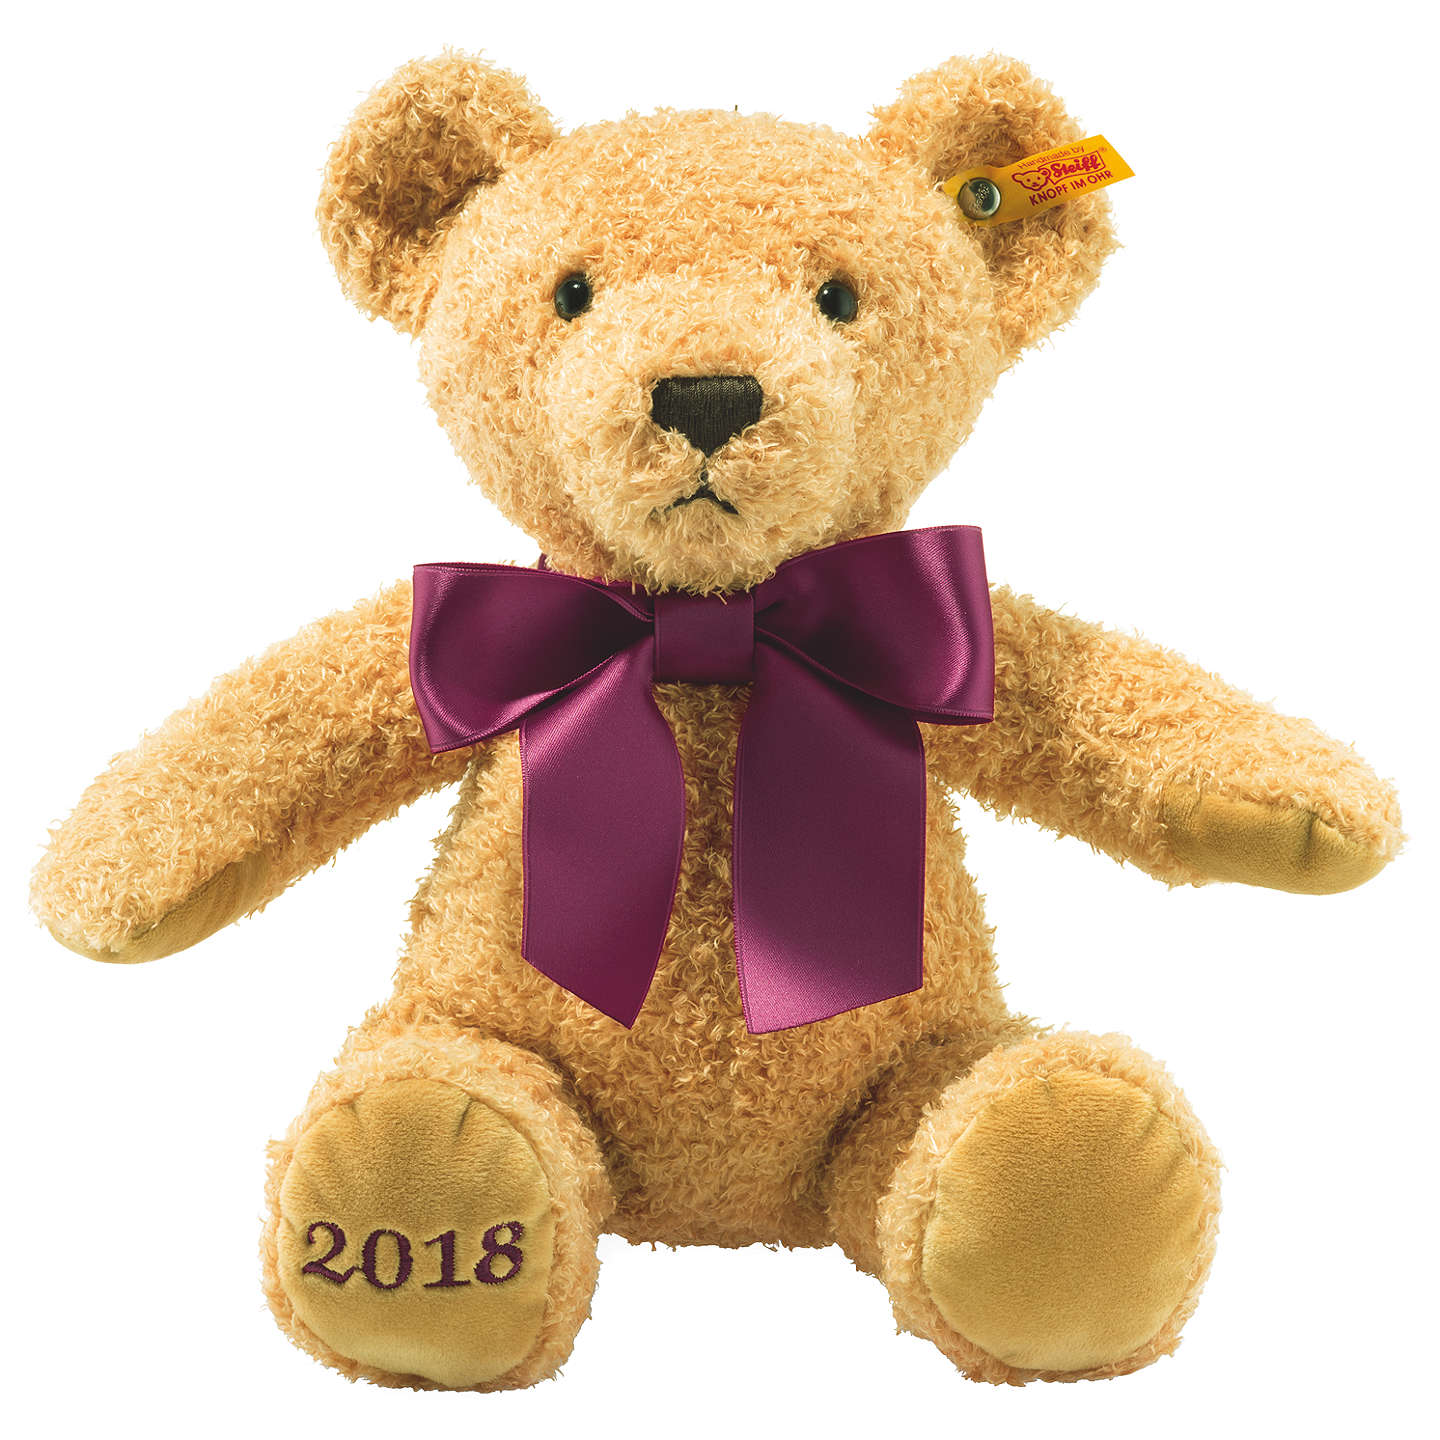 BuySteiff Cosy Year 2018 Bear 36cm Soft Plush Toy, Blond Online at johnlewis.com